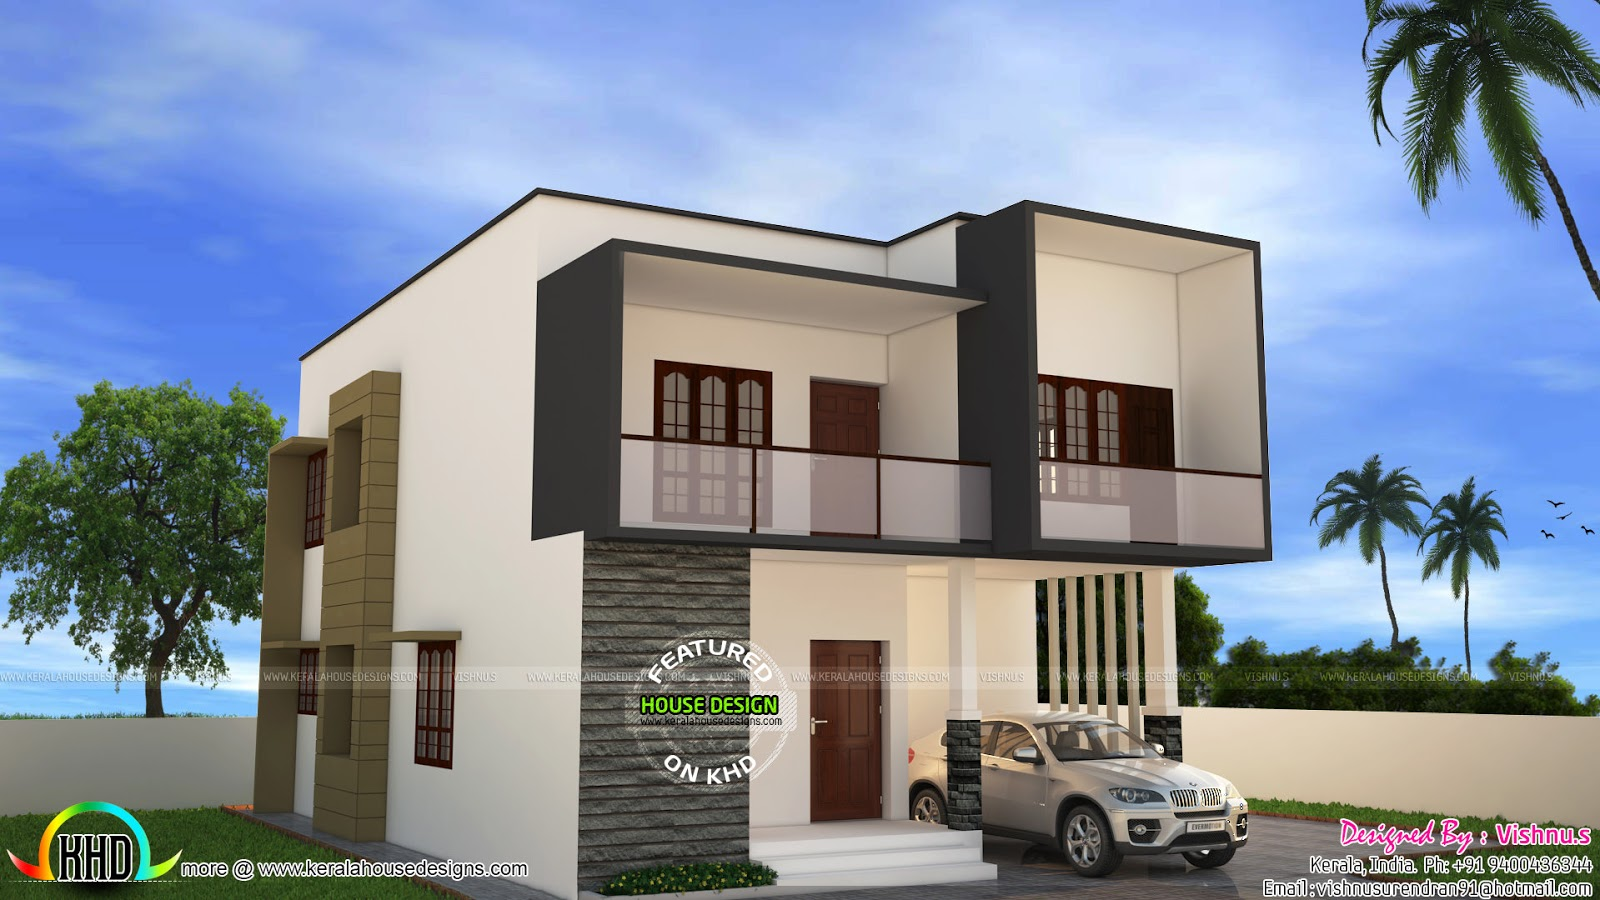 Simple modern house by vishnu s kerala home design and for Basic house design